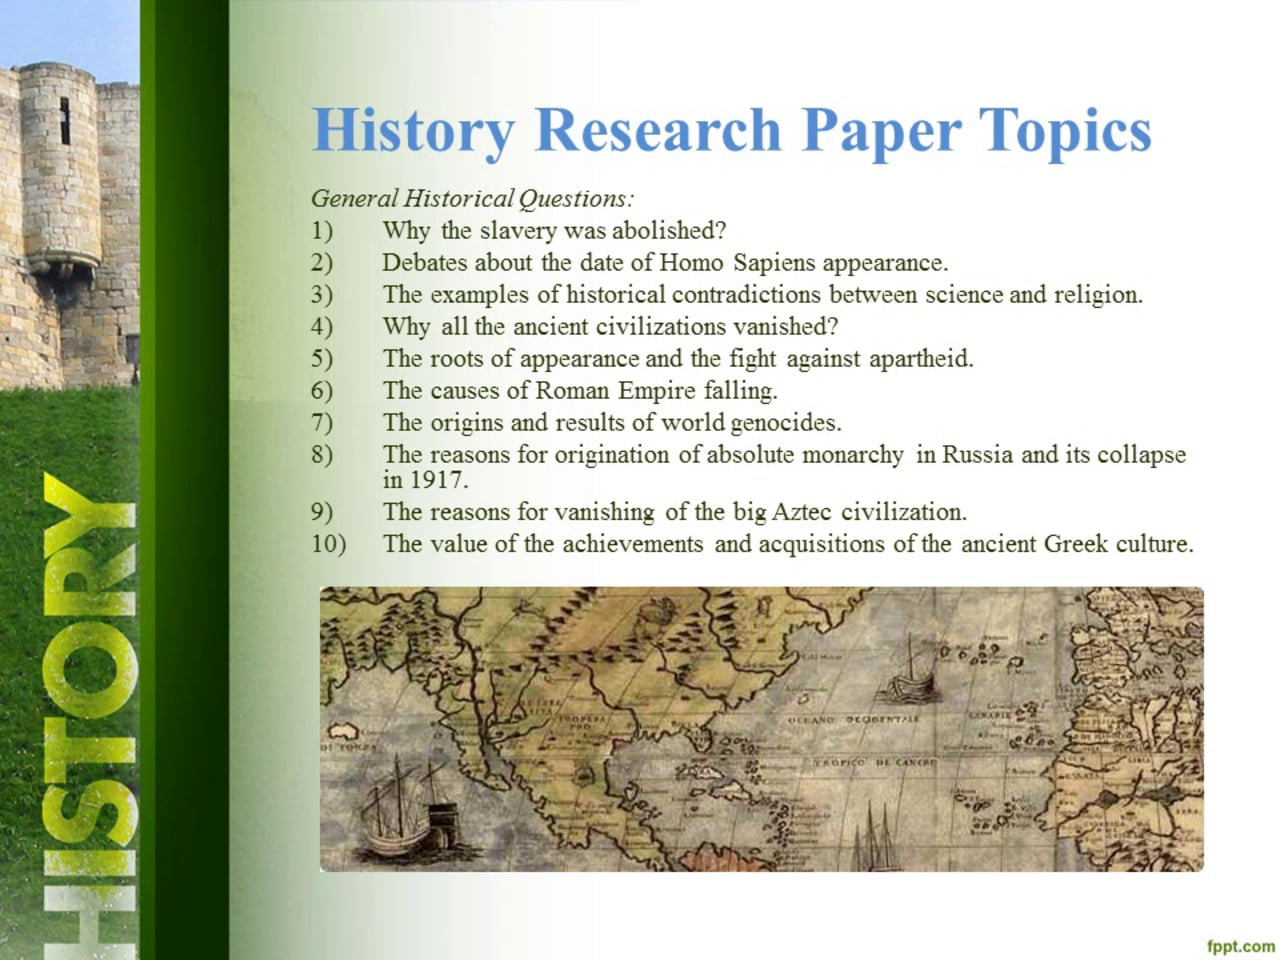 001 530442879 1280x960 Research Paper Good Topics For American History Unforgettable Papers Us Full